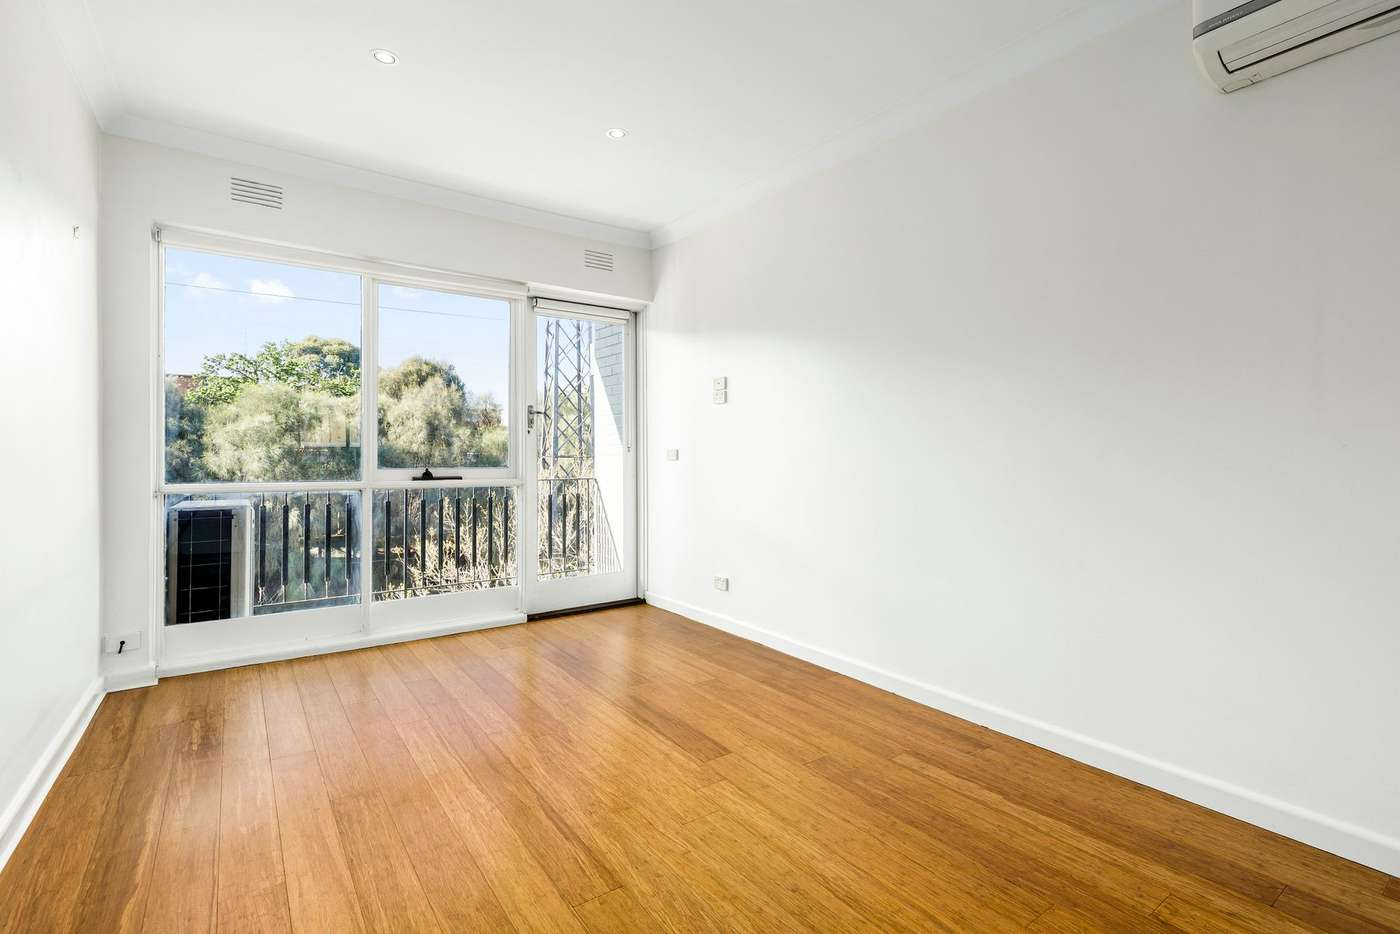 Main view of Homely apartment listing, 14/2 Lennon Street, Parkville VIC 3052